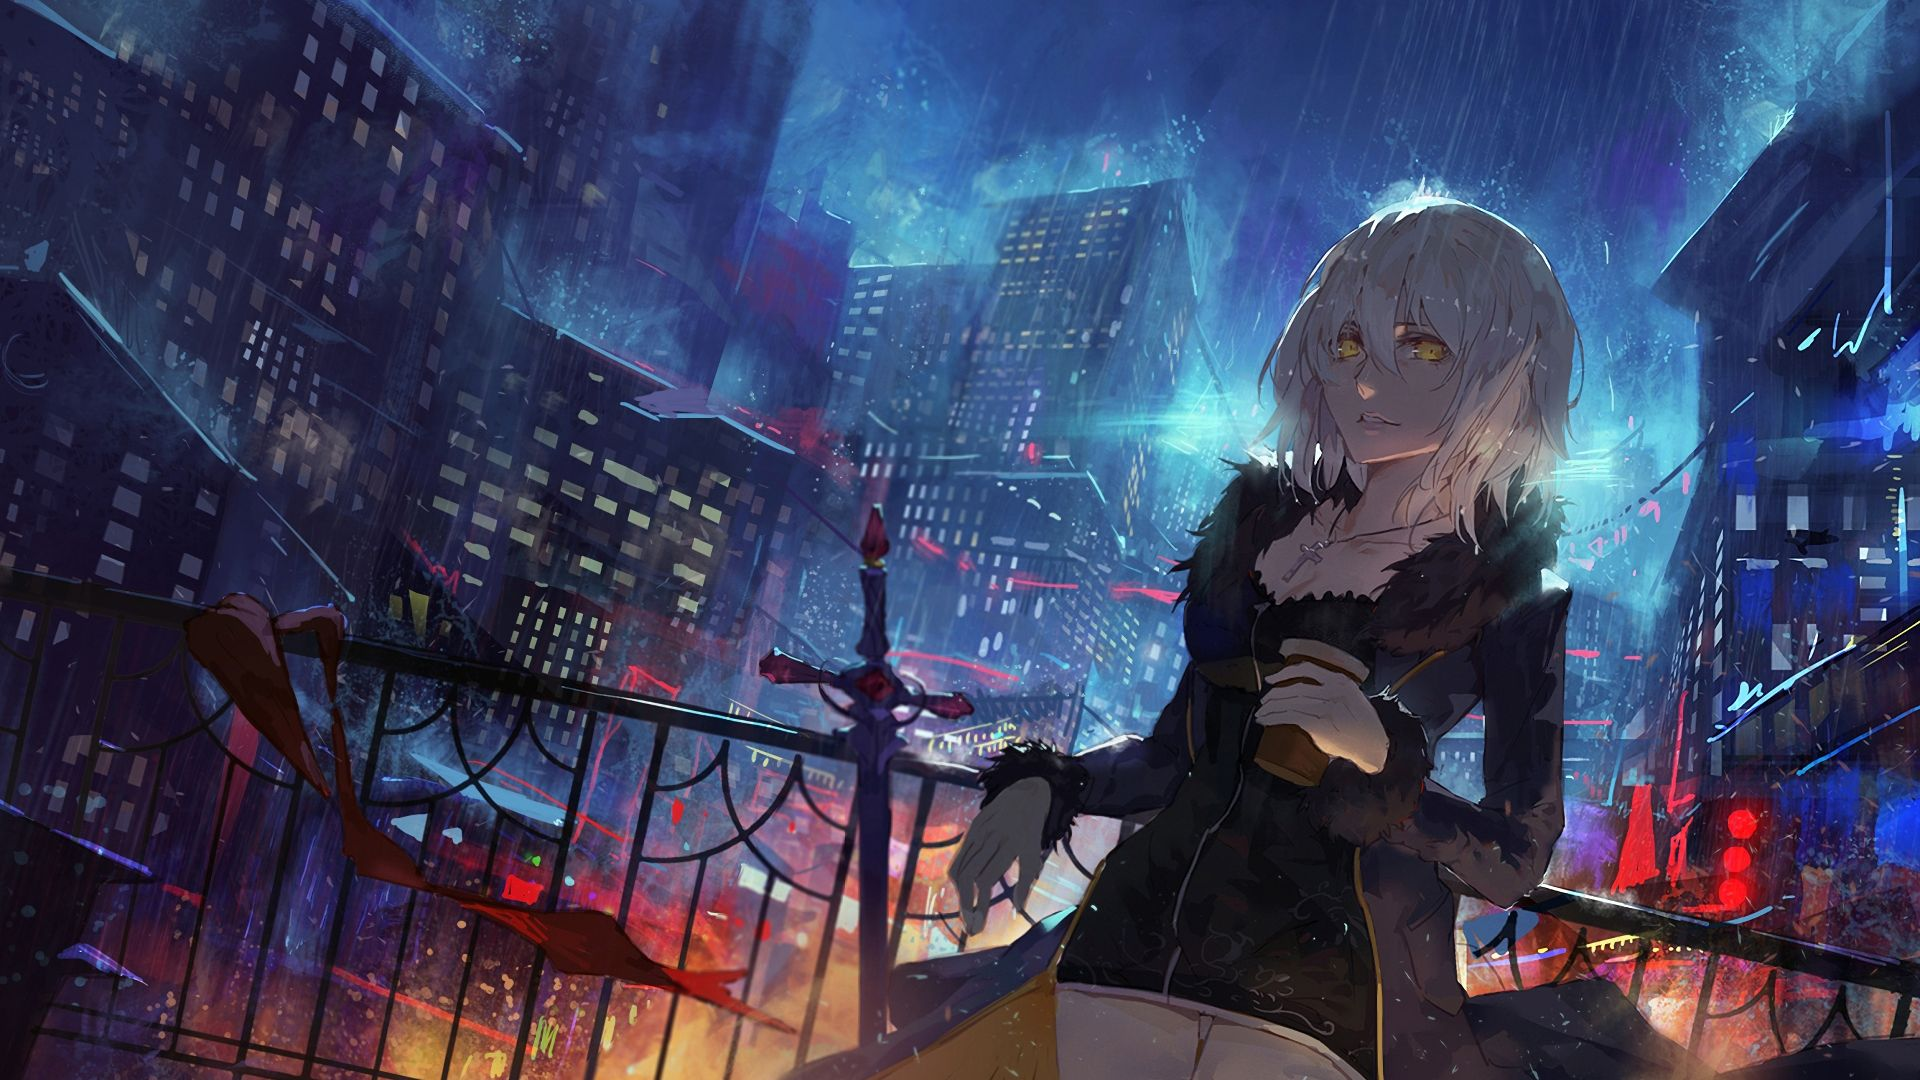 Desktop Wallpaper Jeanne D Arc Alter Fate Grand Order Anime Girl Hd Image Picture Background W Ixxg